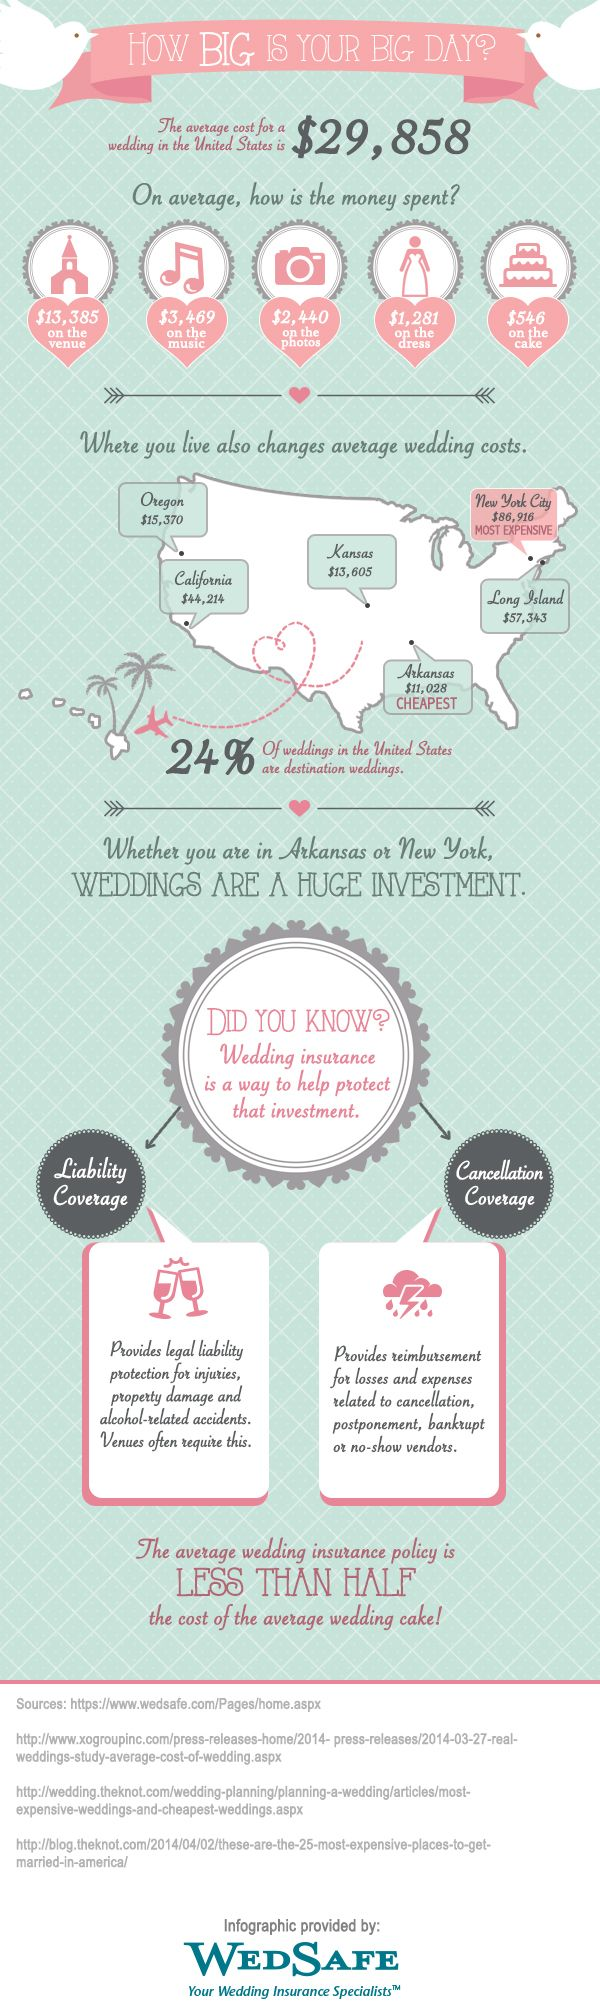 Wedding Budget Infographic Huge Cost Of Weddings And How To Protect It With WedSafe